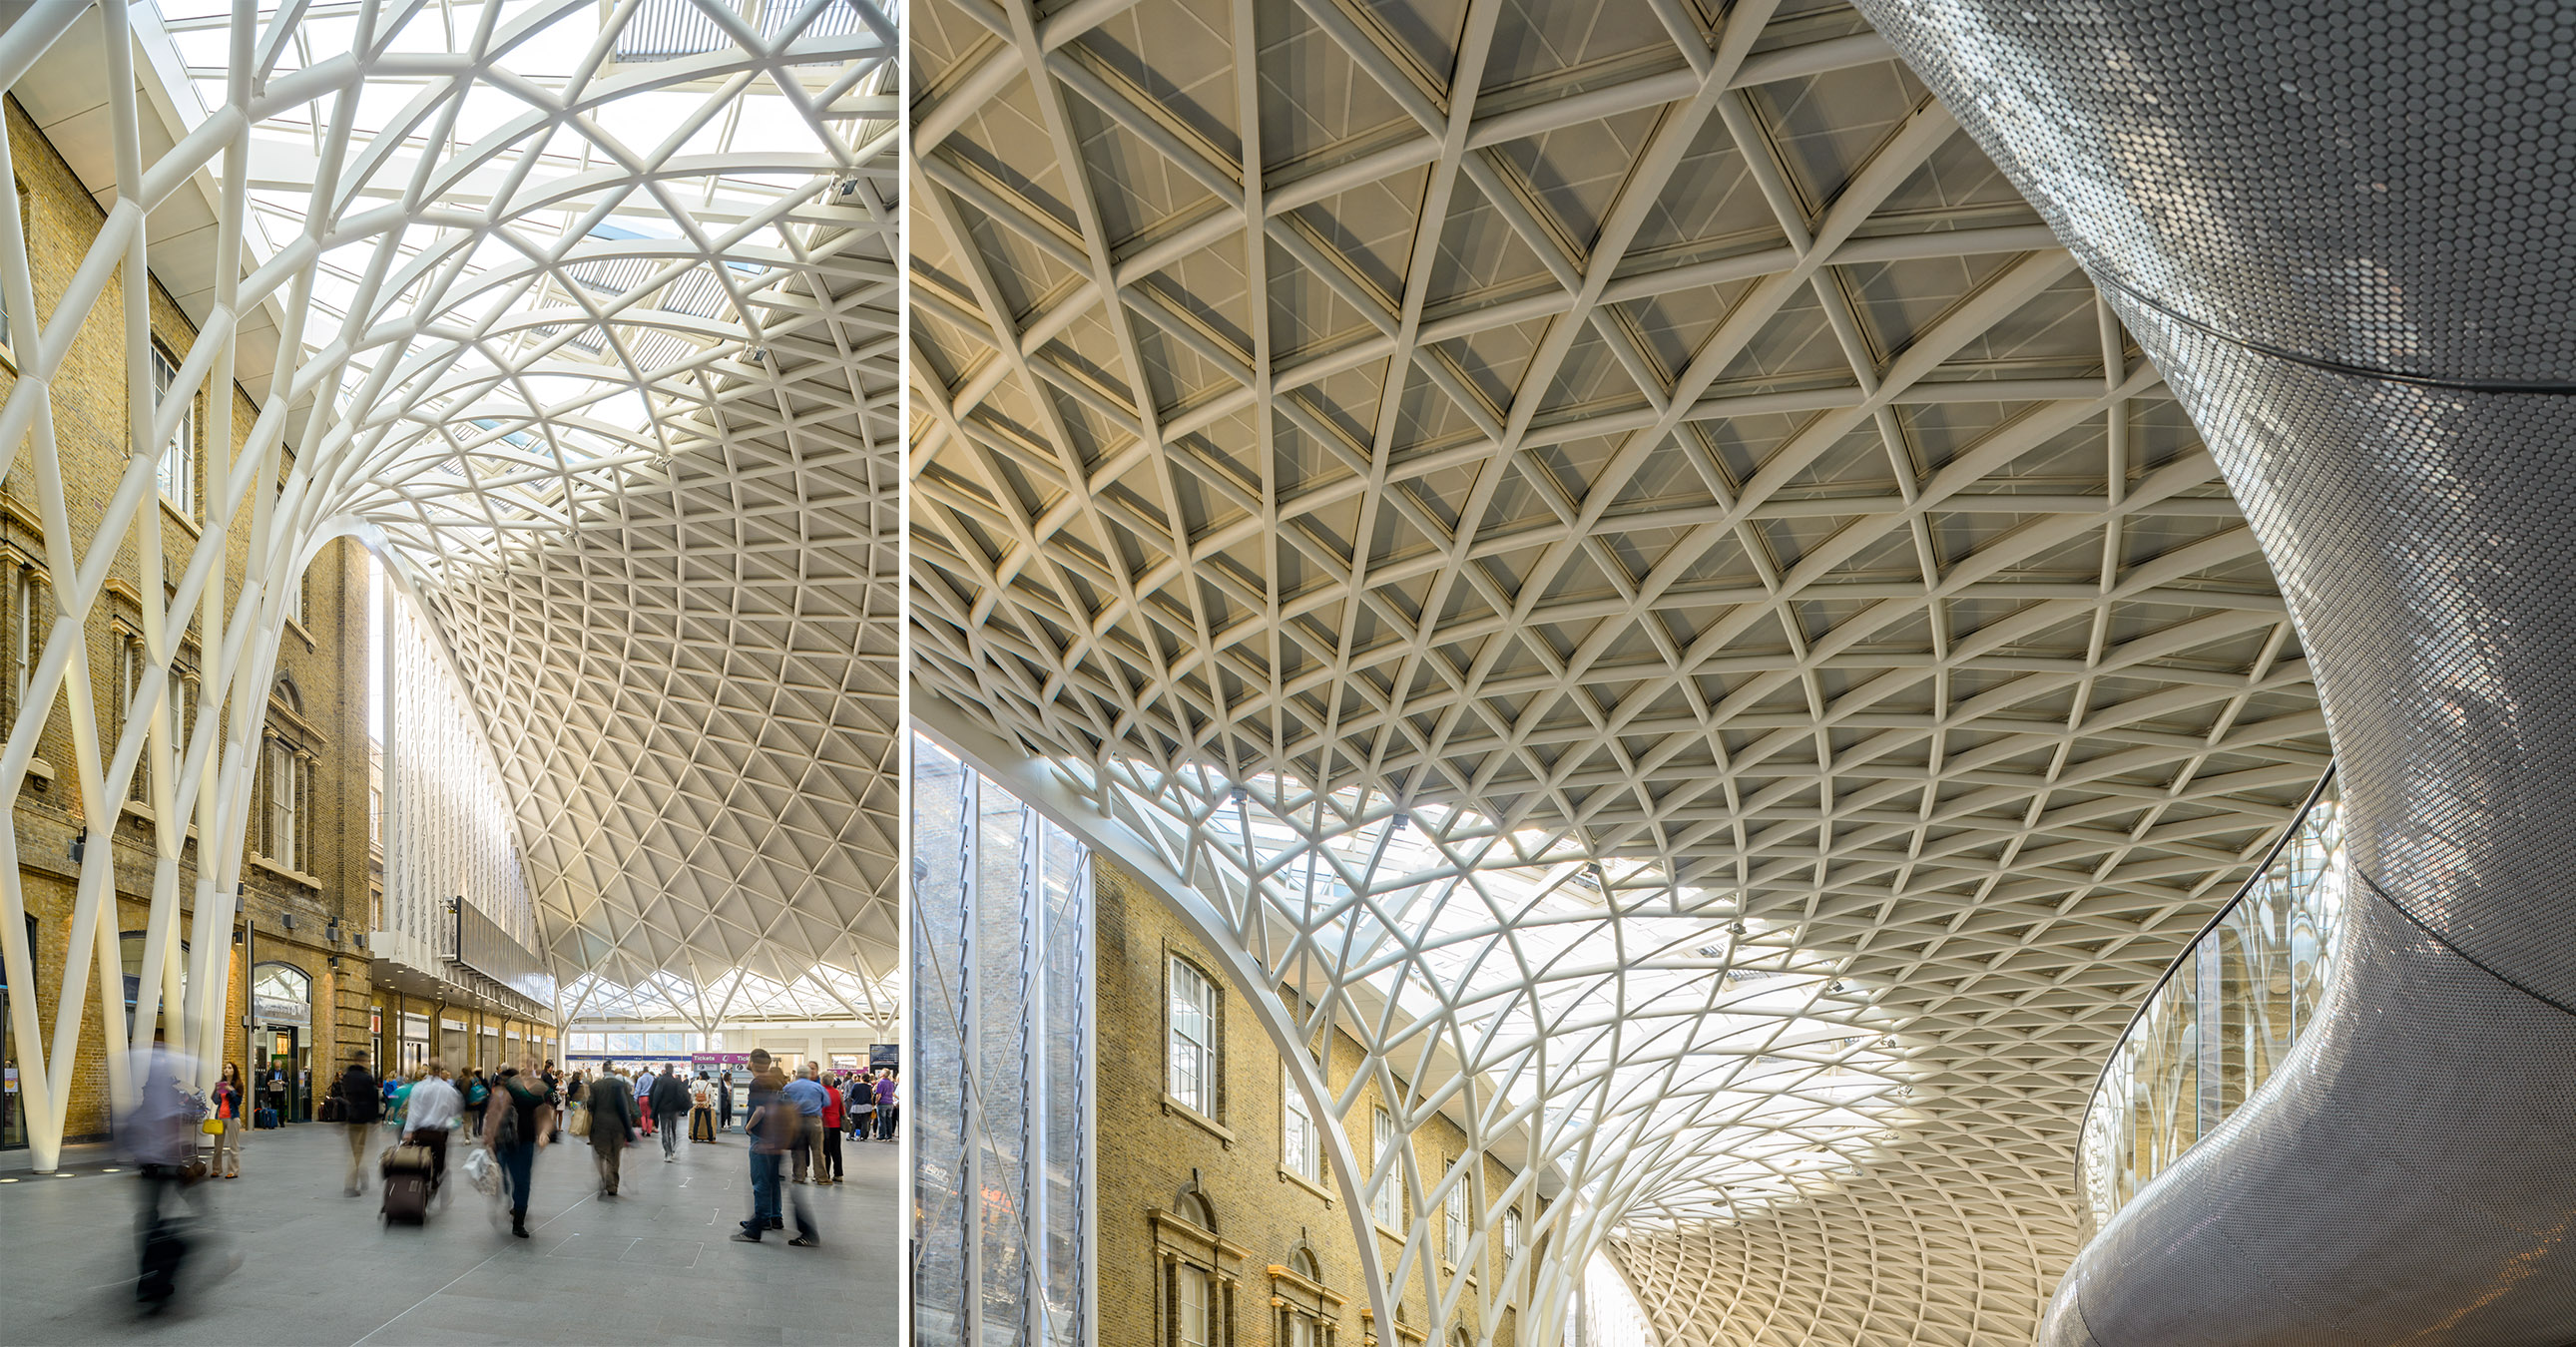 82-doublespace-architectural-photography-london-Kings-Cross-Station-McAslan-.jpg